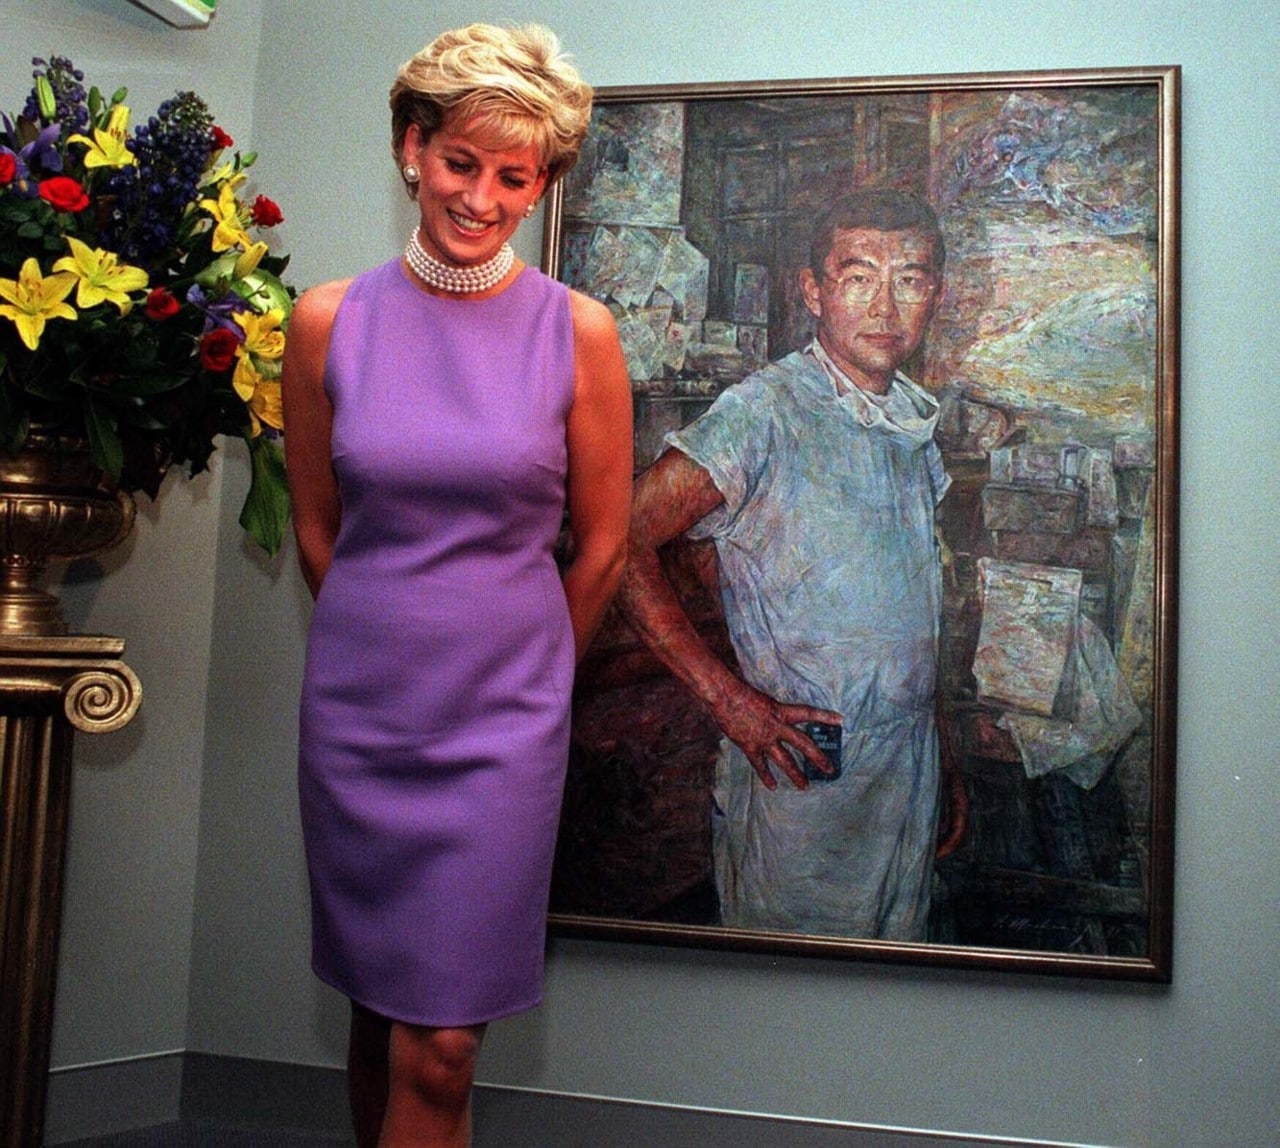 Words of wisdom: 23 life lessons from Princess Diana